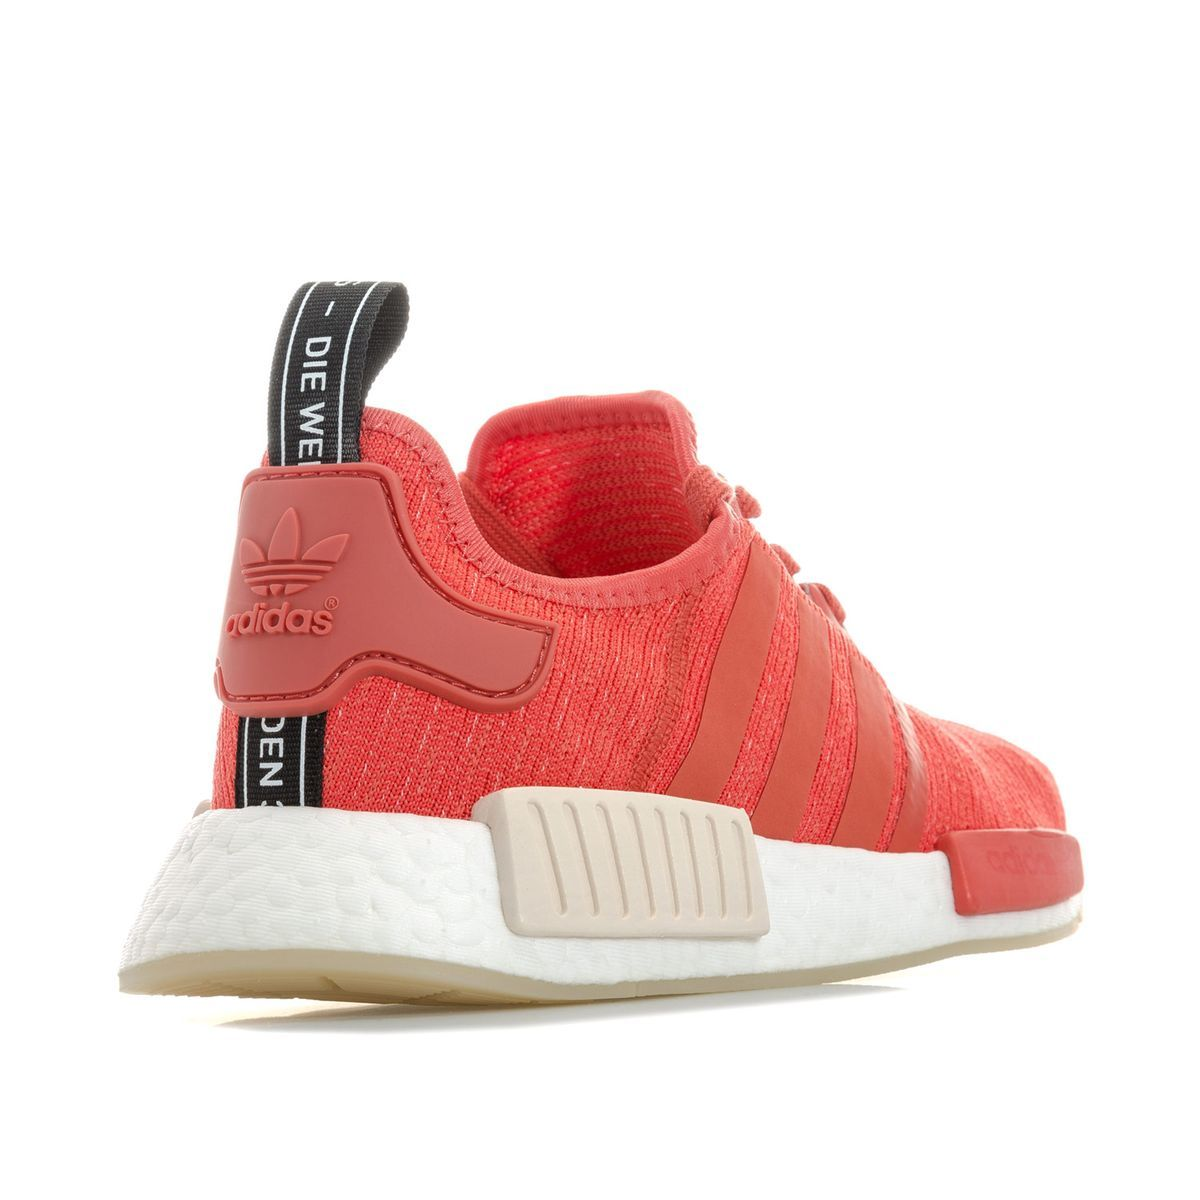 outlet online various colors wide varieties Baskets Adidas Nmd R1 Blanc Femme - Taille : 39 1/3;36 2/3 ...